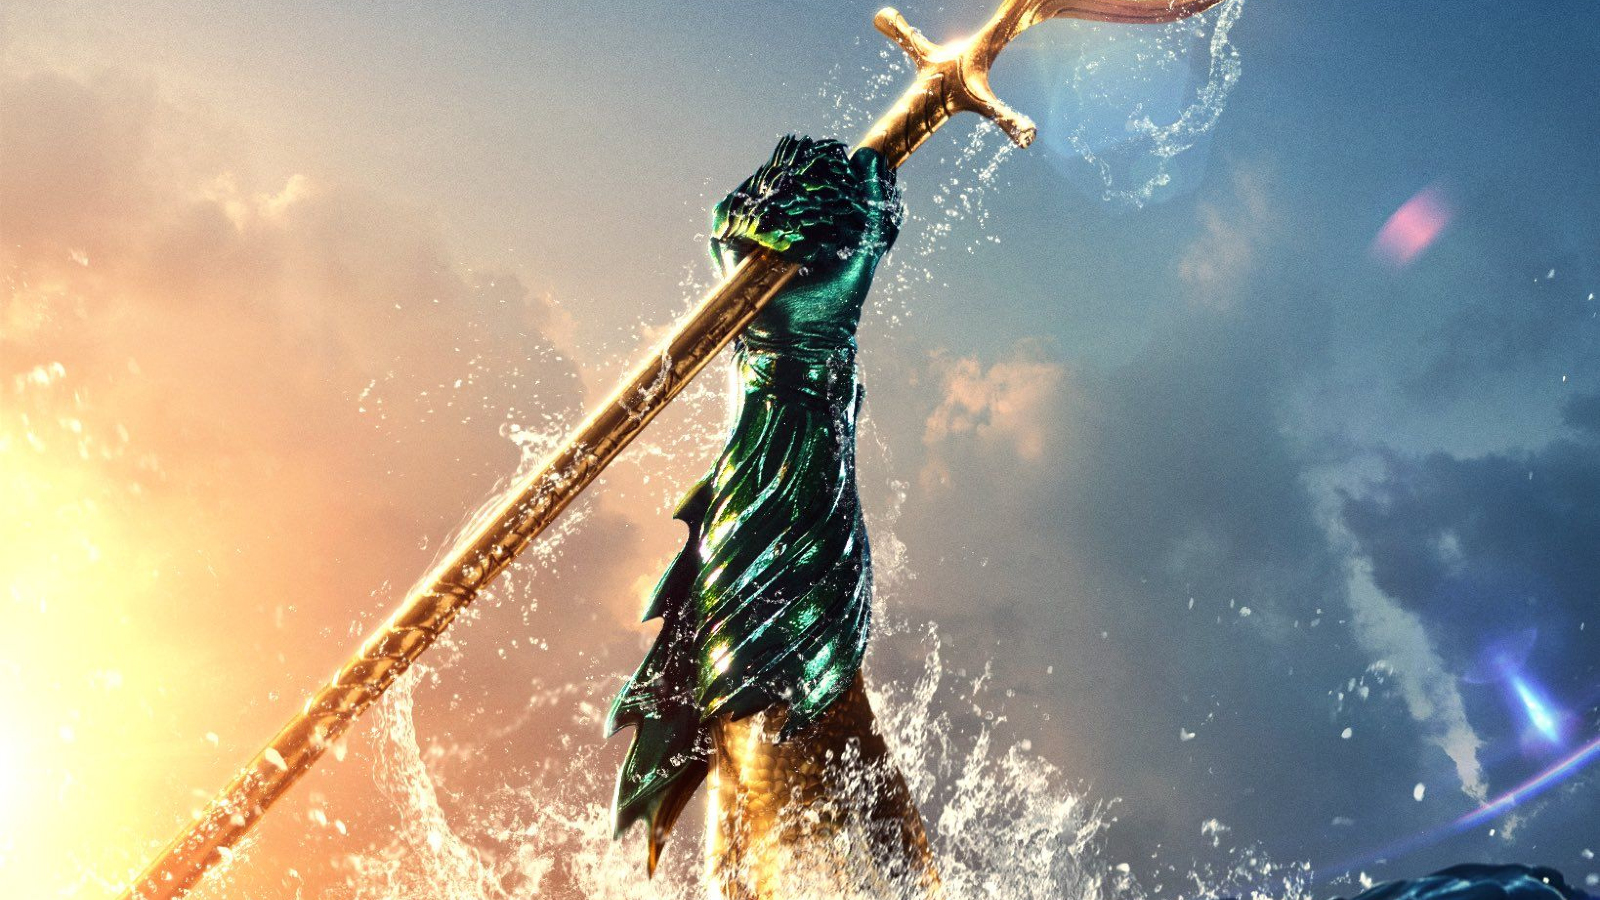 Aquaman Movie Free Download In Hindi In 1080: Download Aquaman Movie Brand New Poster 1400x1050